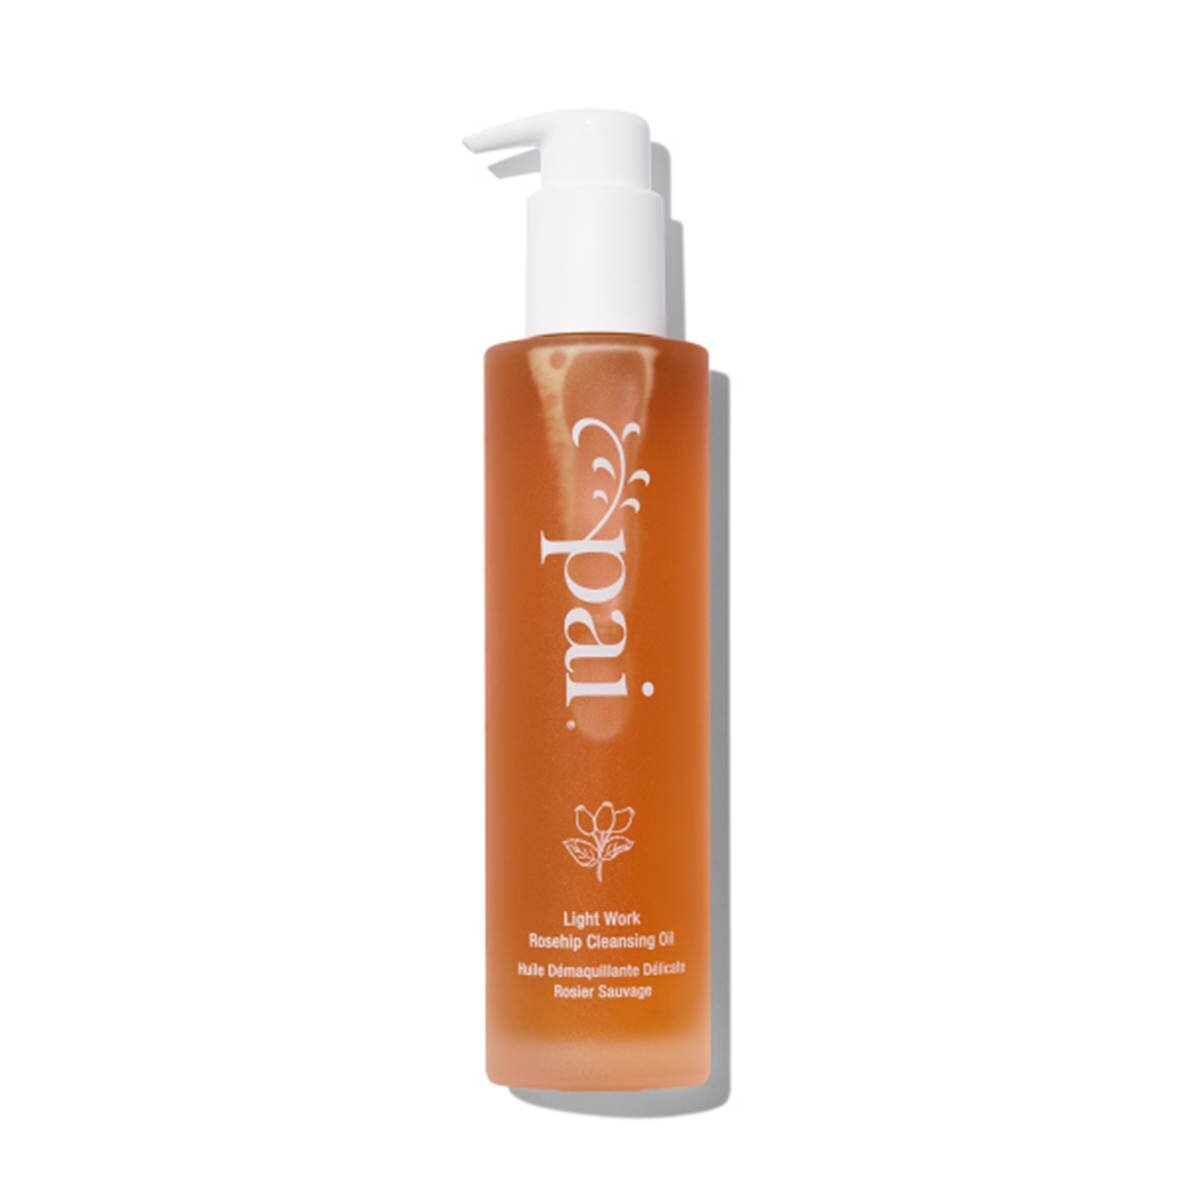 Pai  Light Work Rosehip Cleansing Oil ($56)